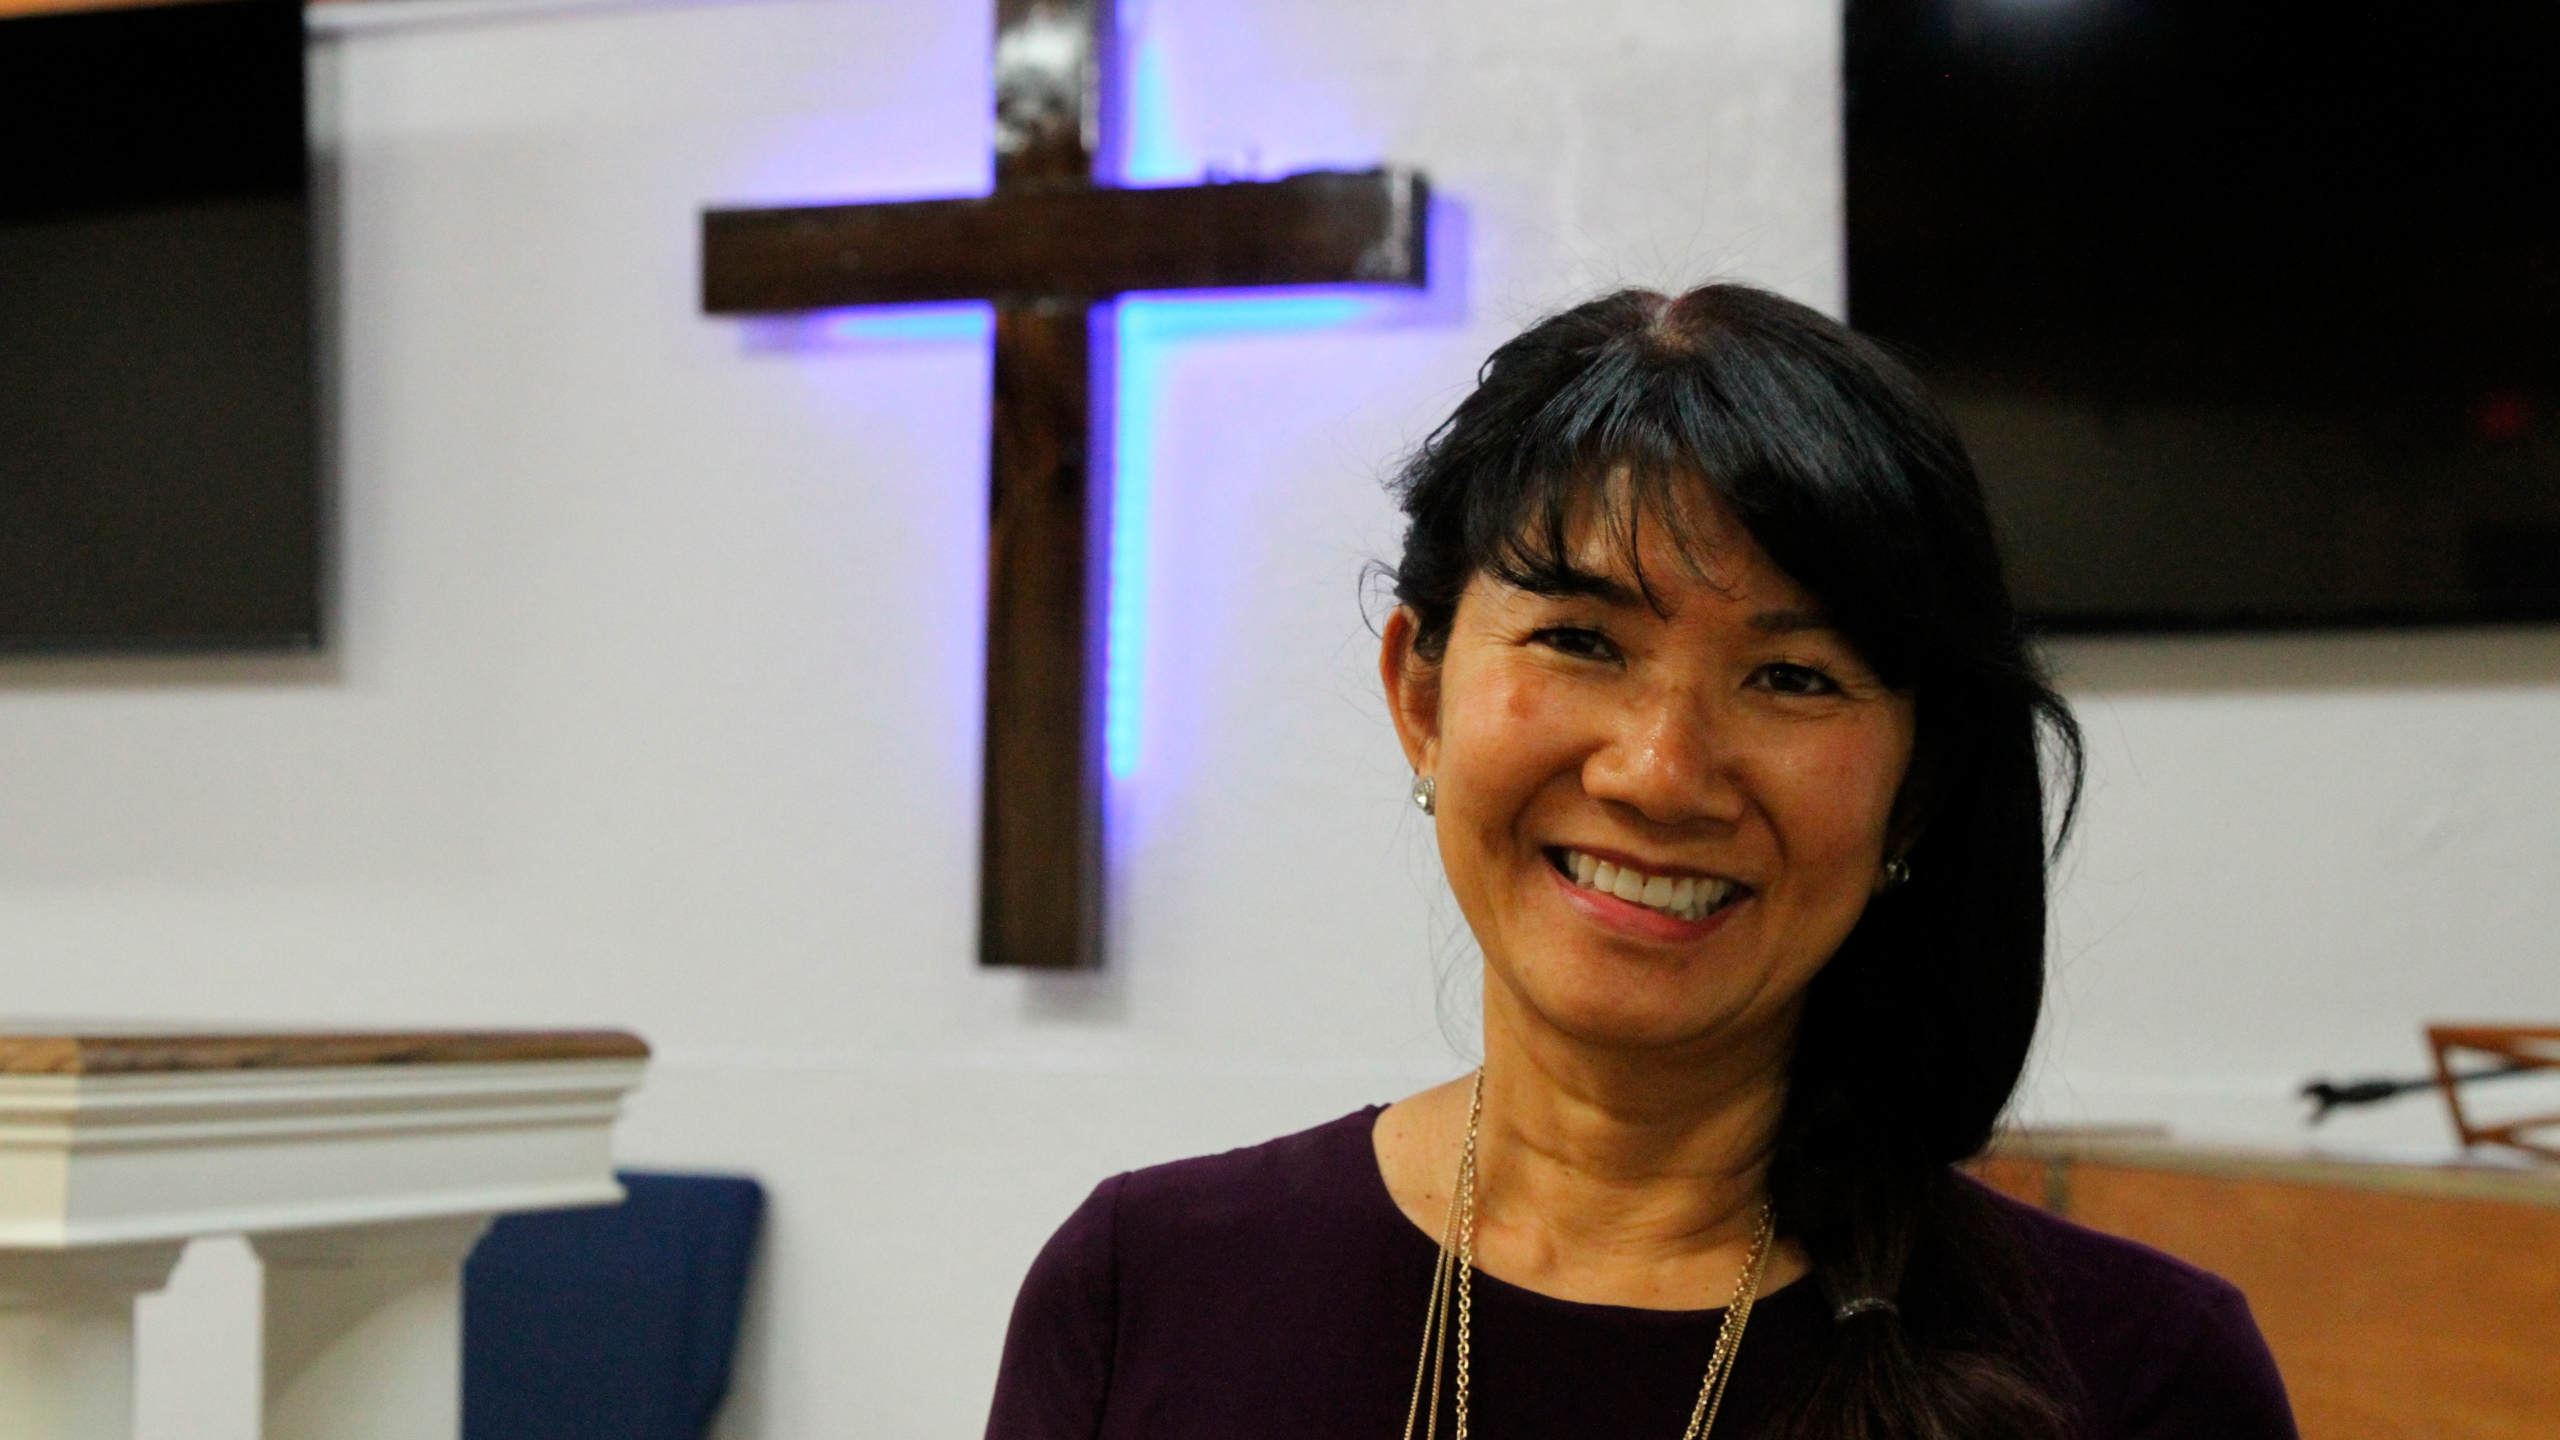 In this May 24, 2021, photo, Linda Dunegan poses for a photo in the sanctuary of the Open Door Baptist Church in Anchorage, Alaska. Dunegan purchased a former strip club and leased the main floor to the church. (AP Photo/Mark Thiessen)